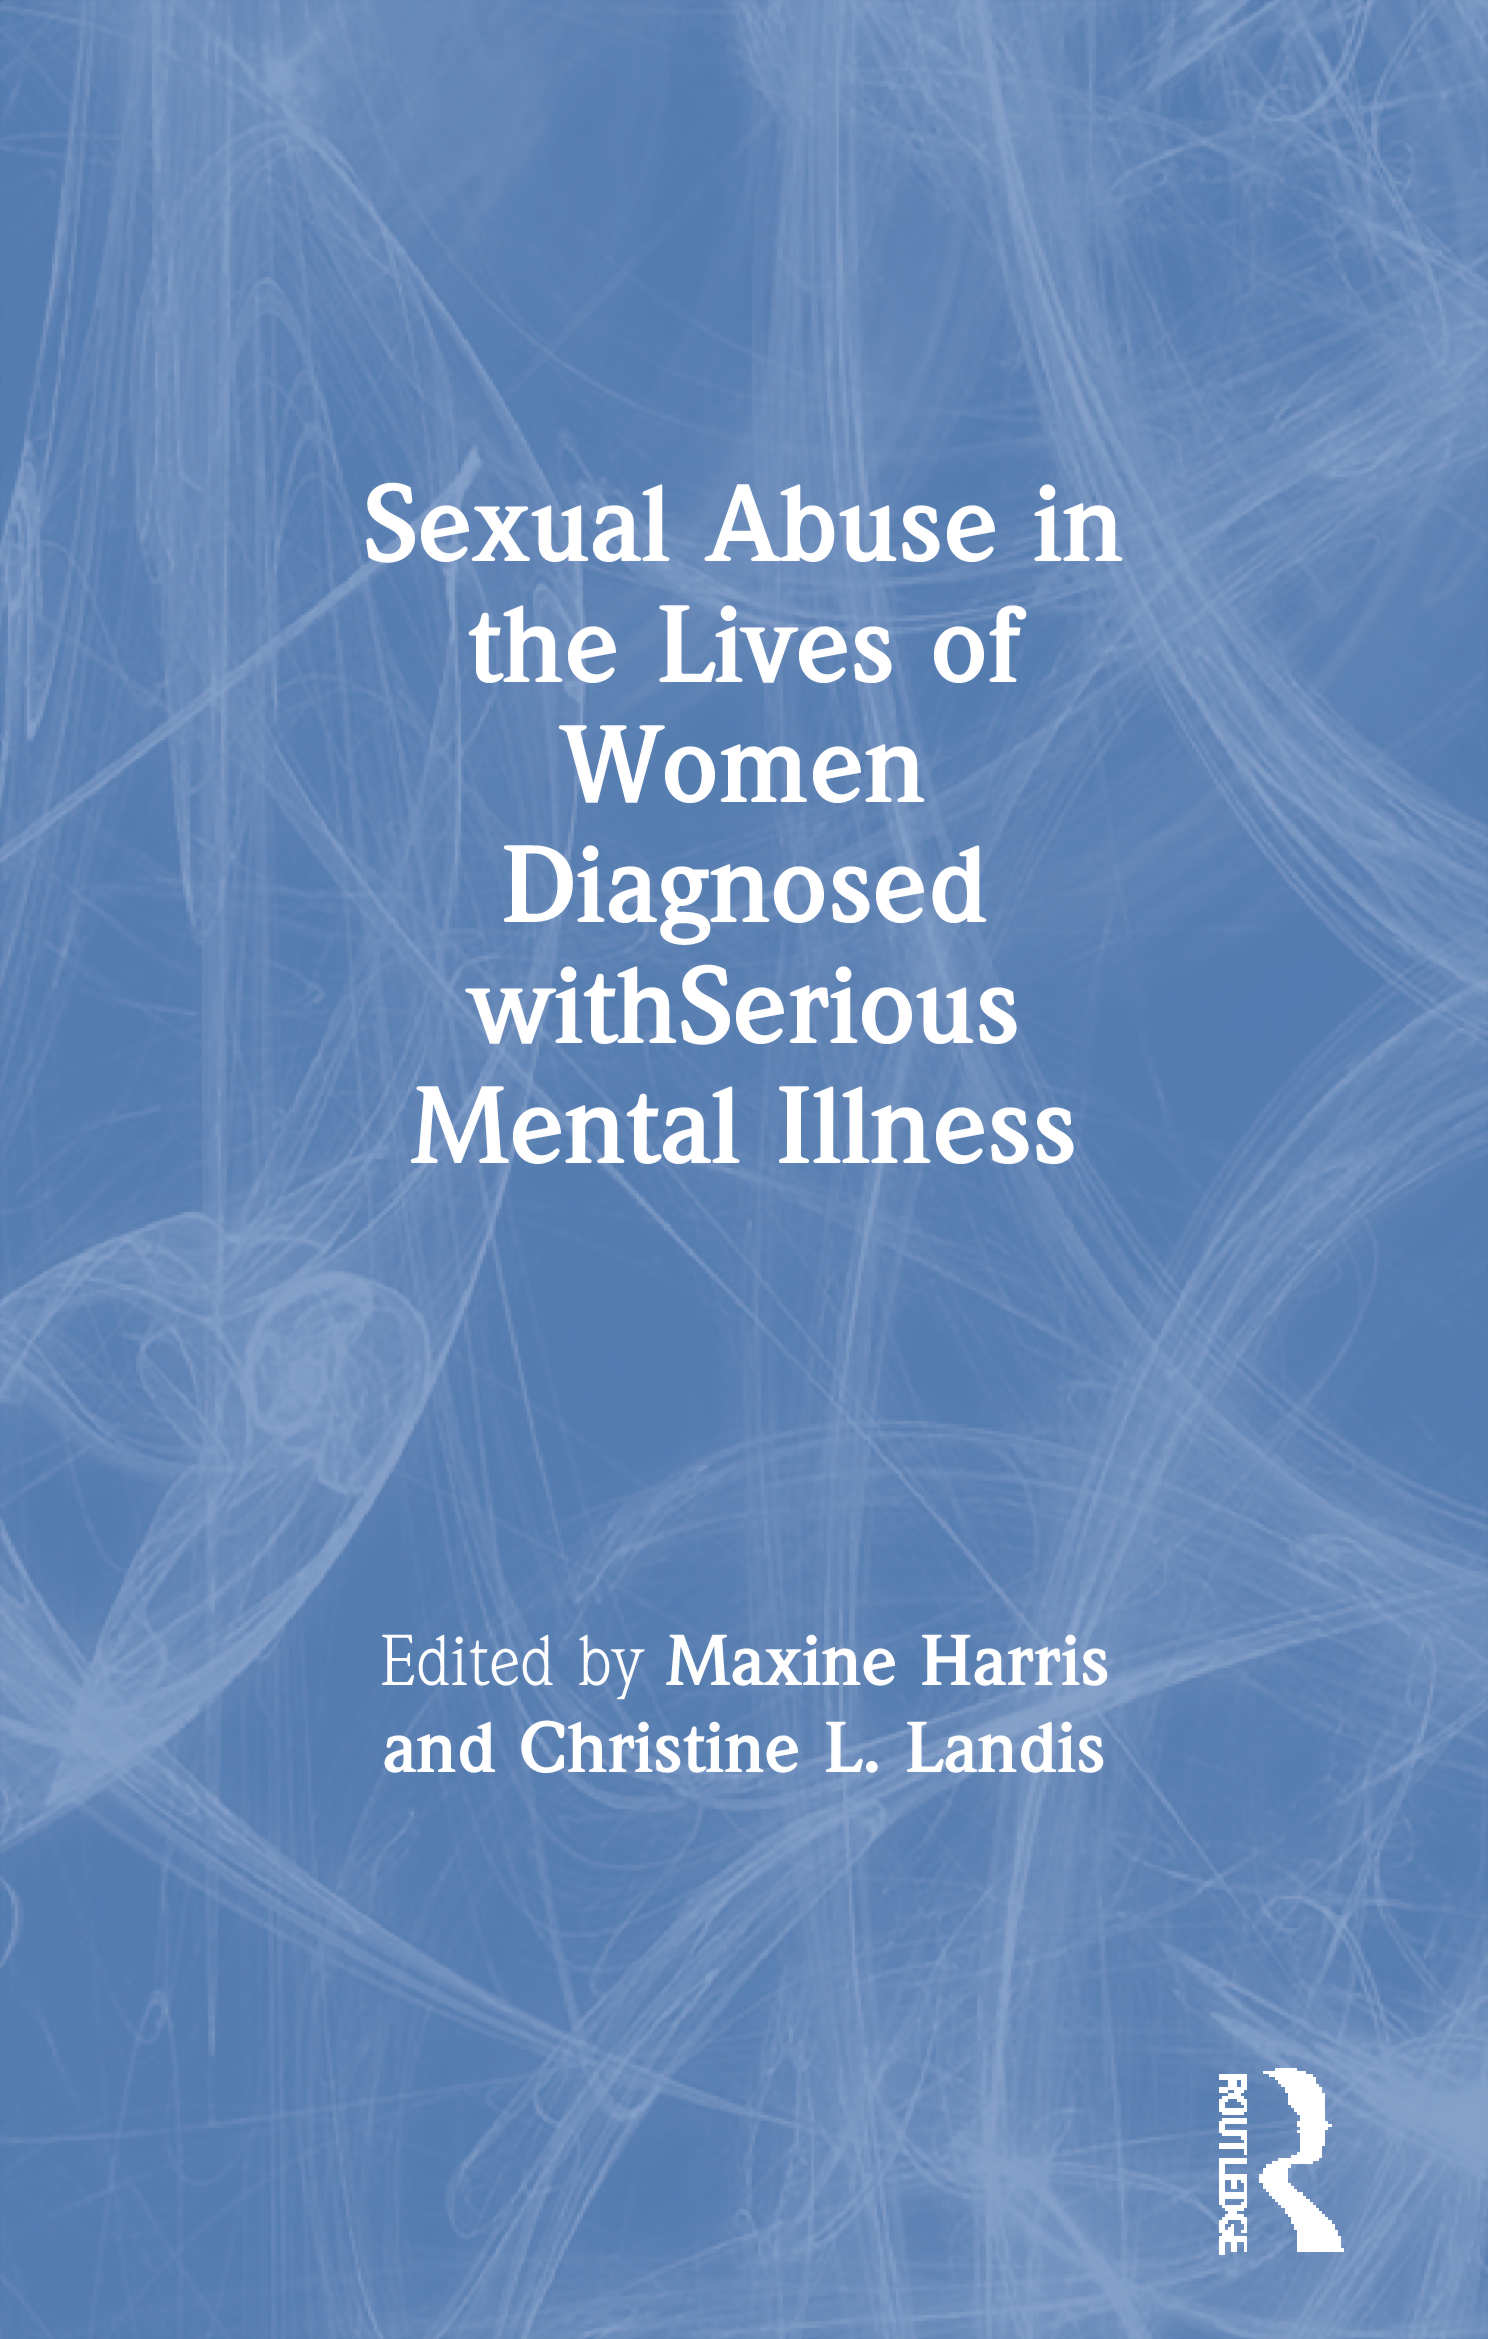 Sexual Abuse in the Lives of Women Diagnosed withSerious Mental Illness